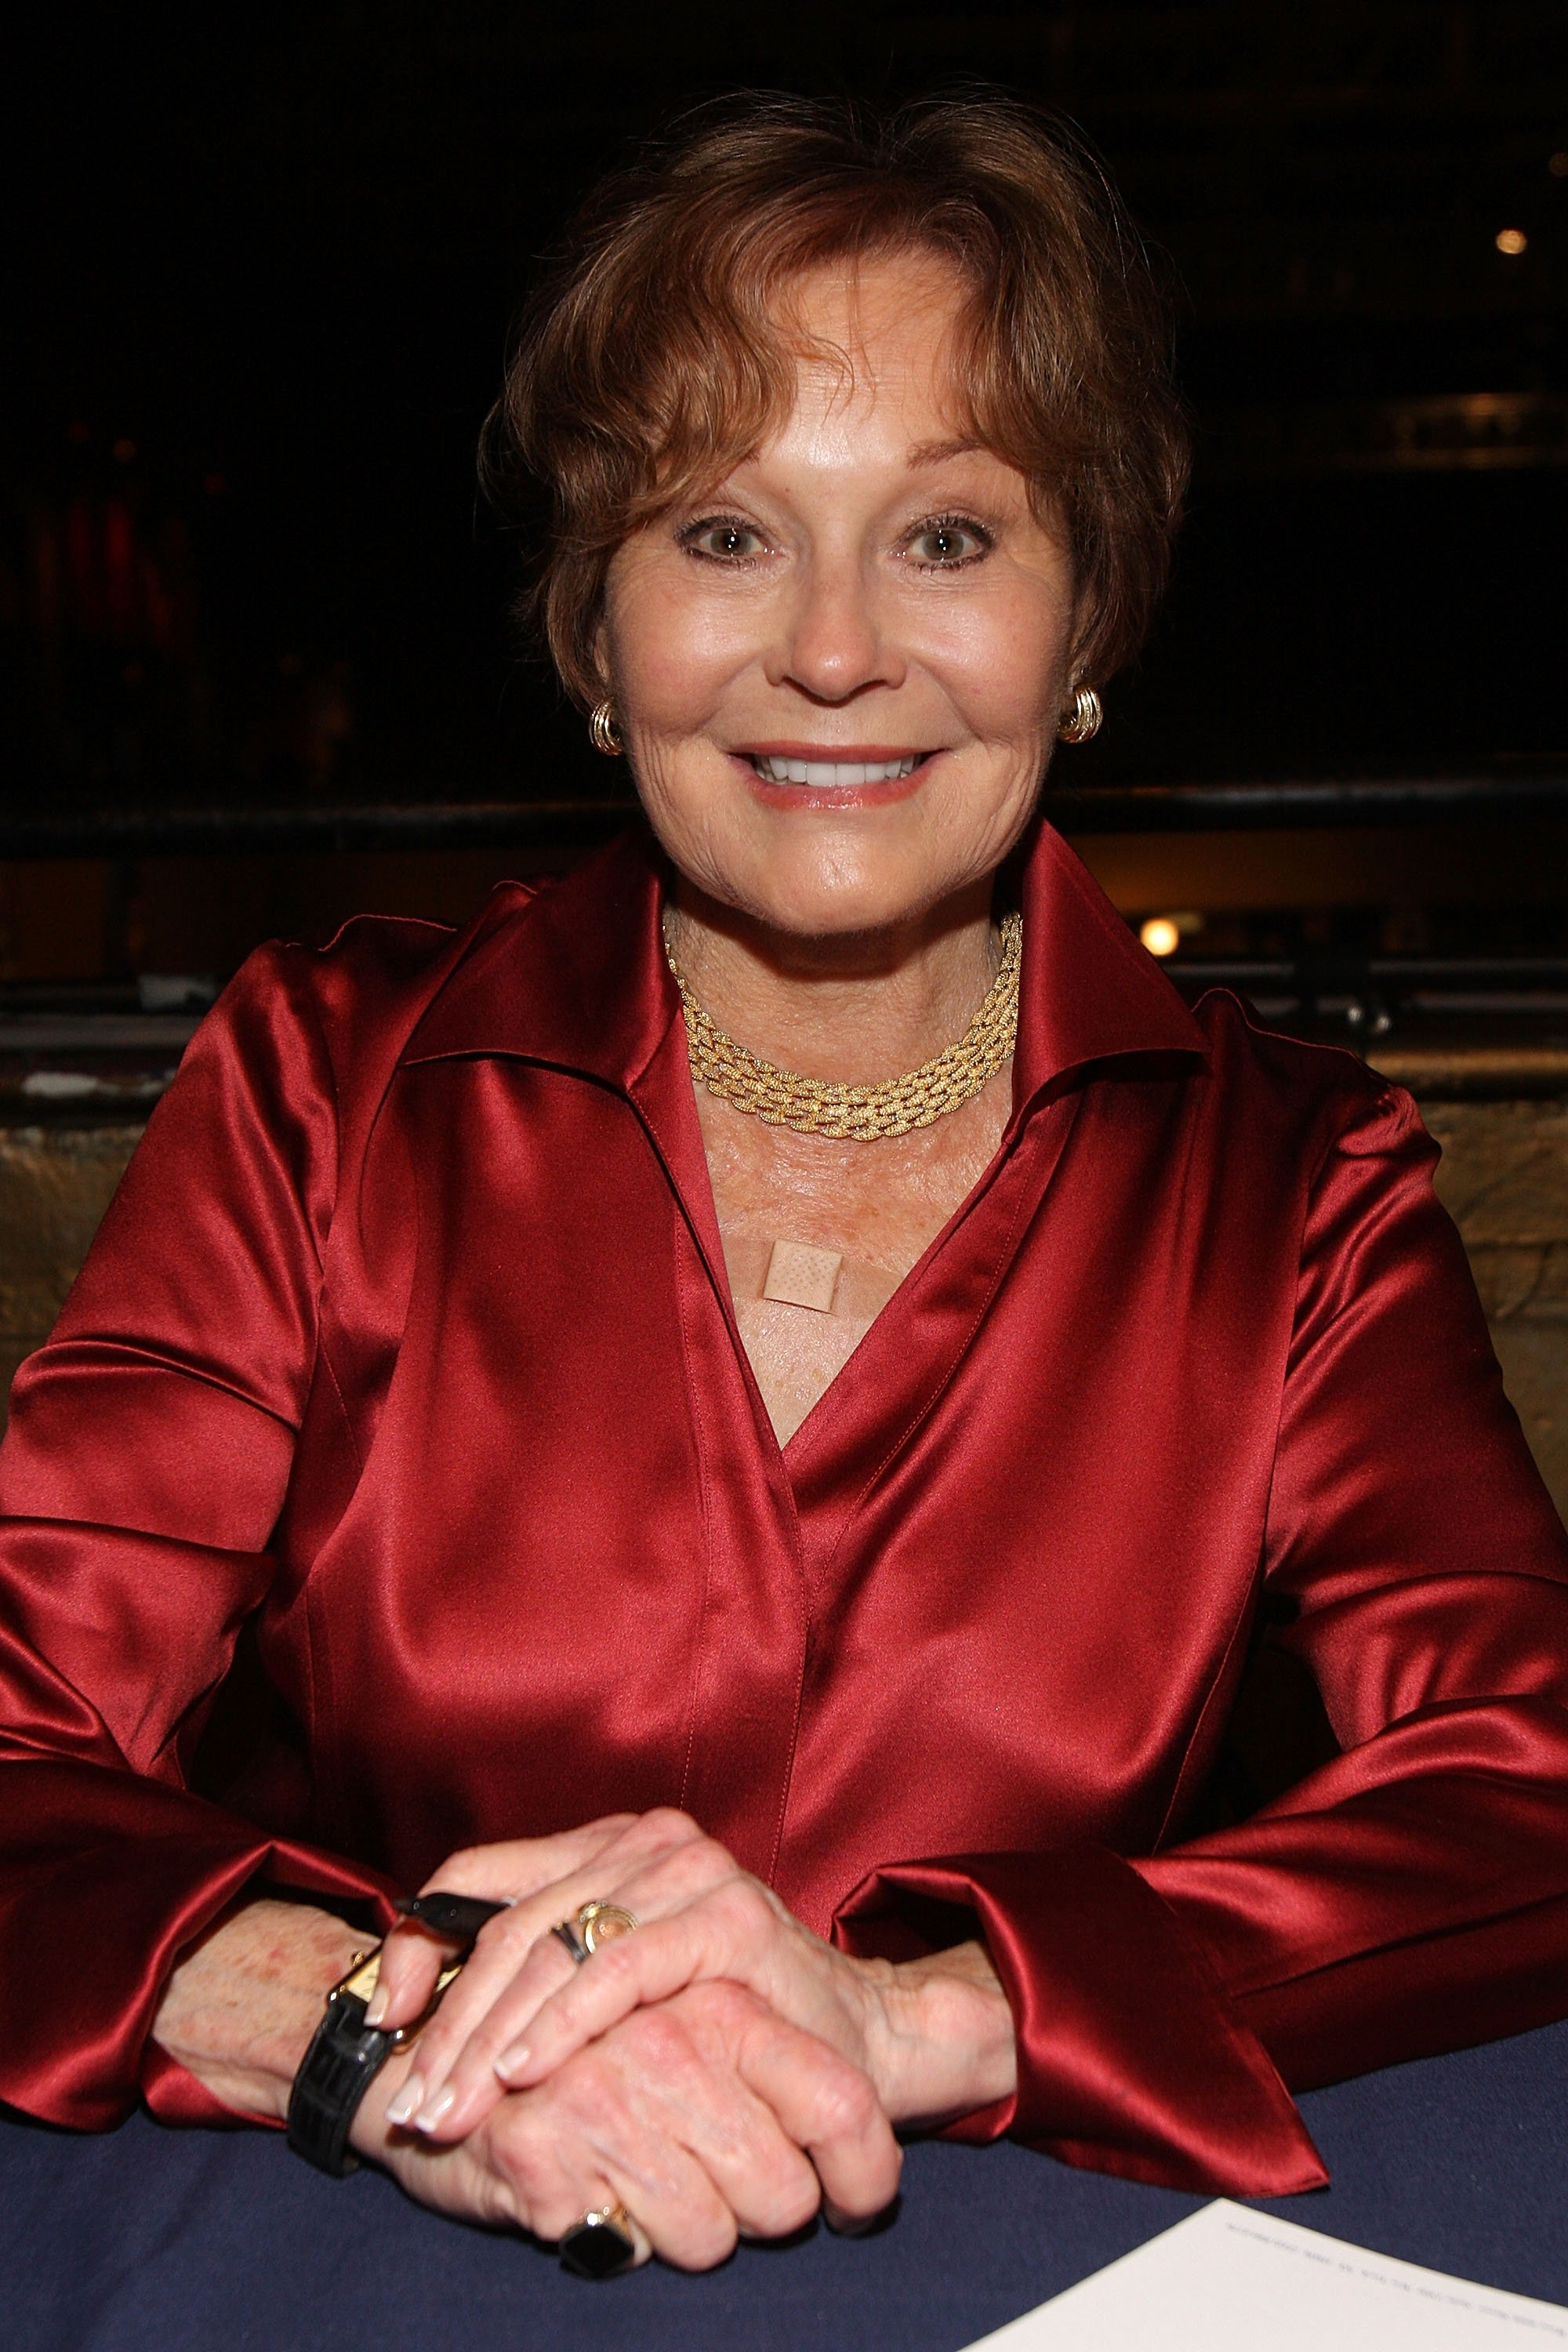 Marj Dusay attends the 23rd Annual Broadway Flea Market & Grand Auction at Roseland Ballroom on September 27, 2009, in New York City. | Source: Getty Images.